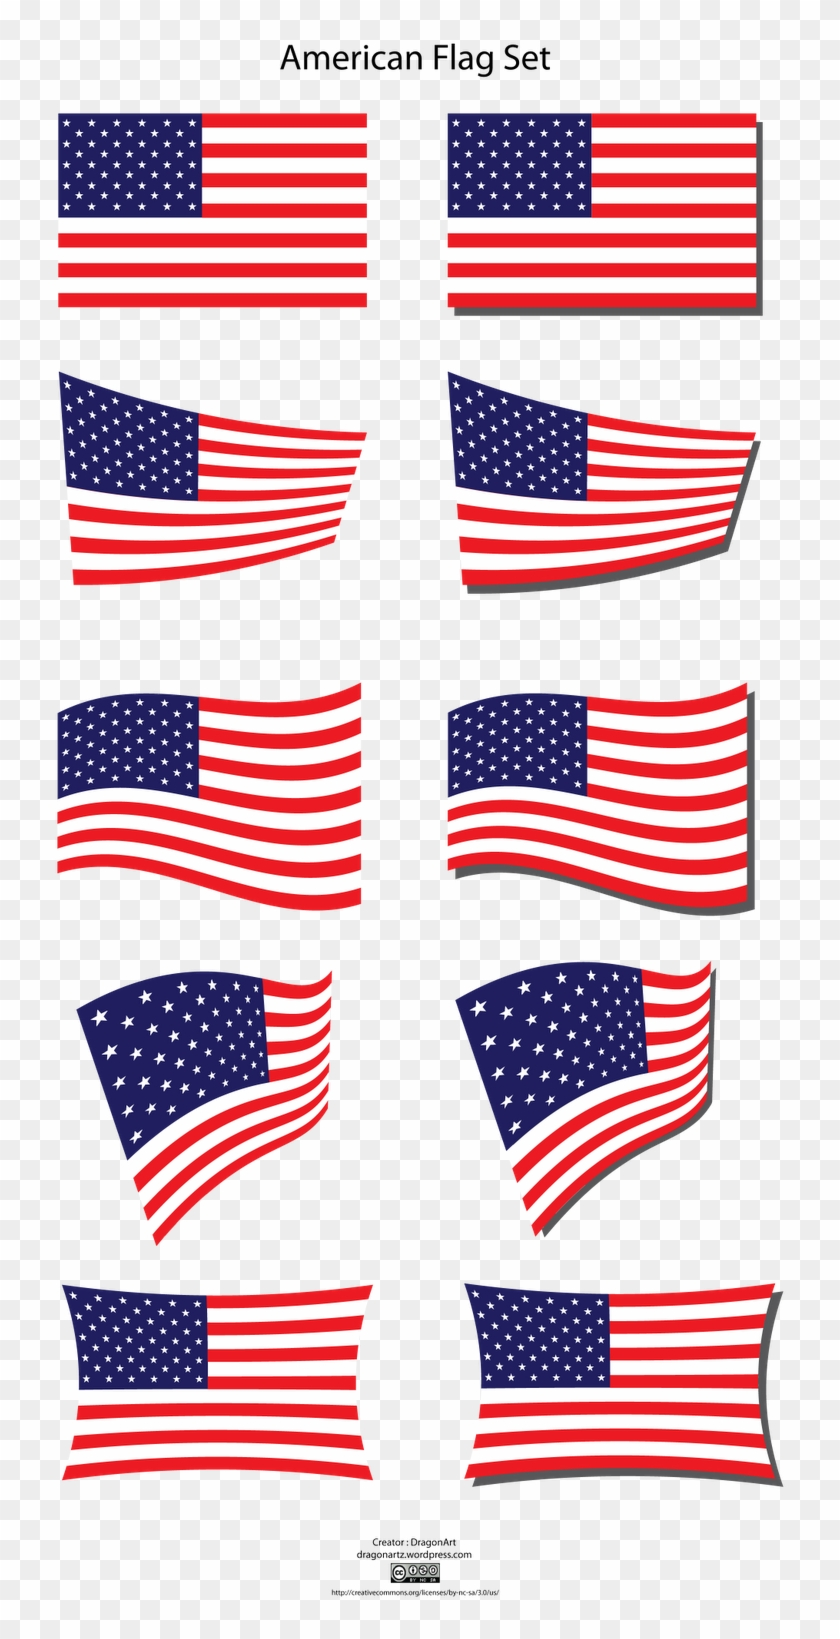 15 American flag cliparts png united states for free download on.